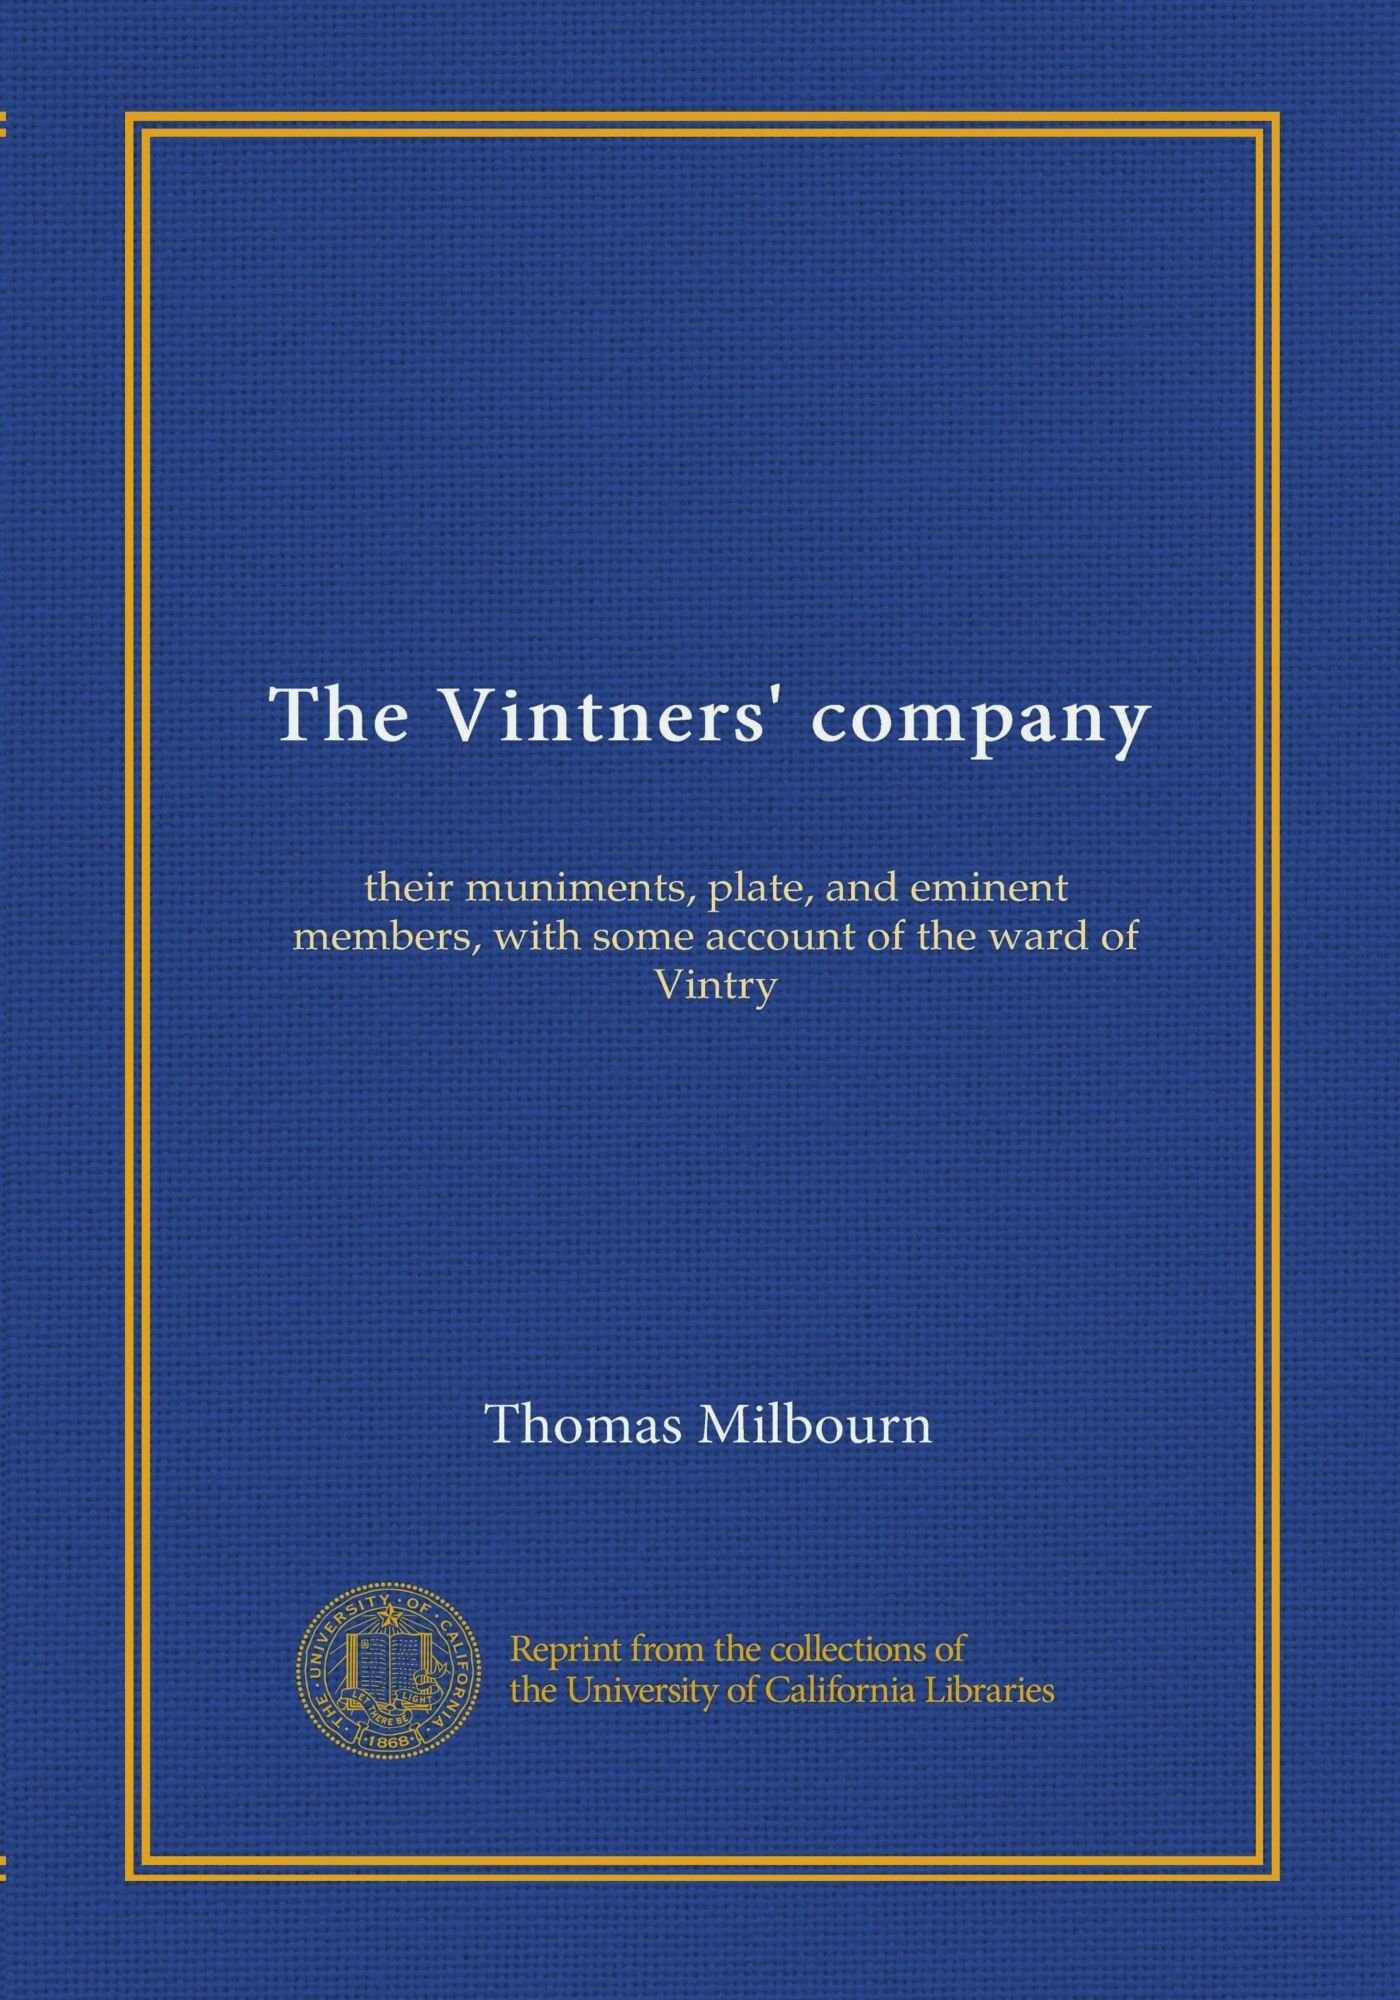 The Vintners' company: their muniments, plate, and eminent members, with some account of the ward of Vintry pdf epub